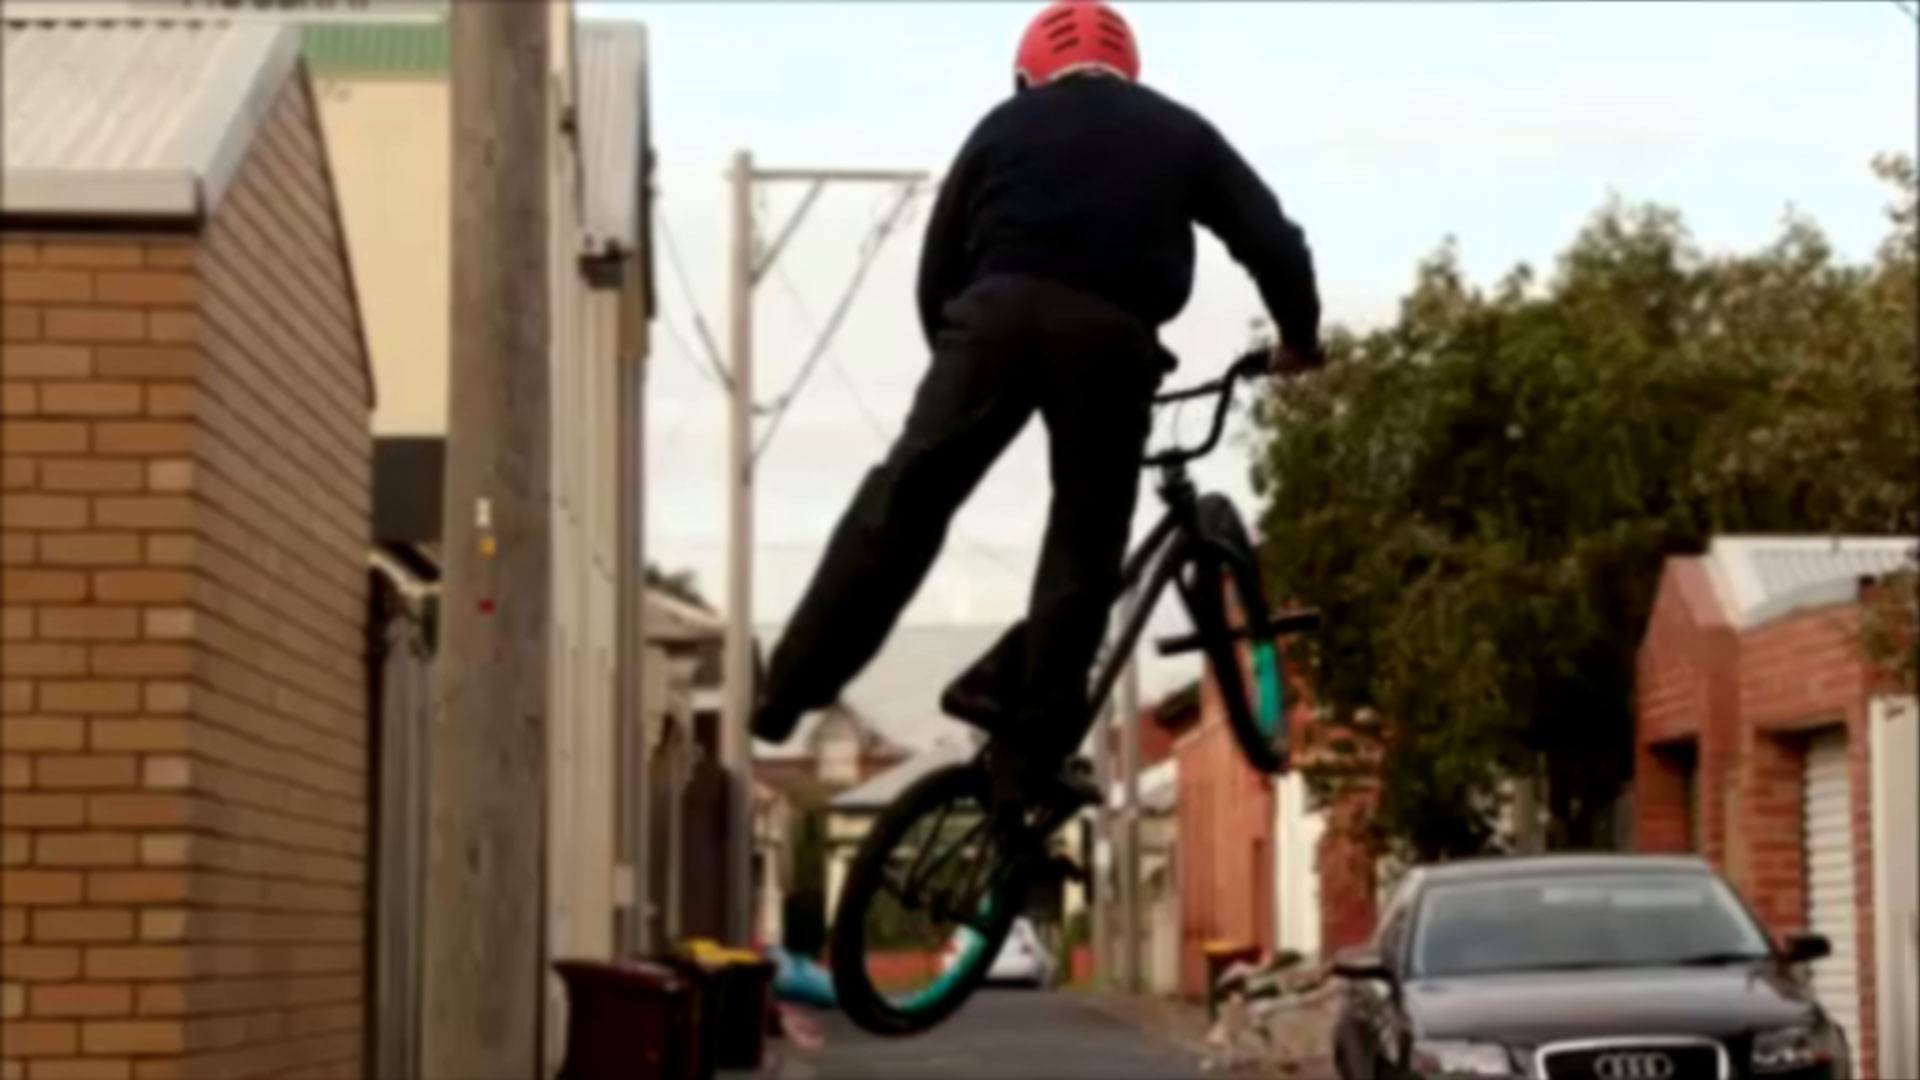 Stunt person jumps high on a bike.